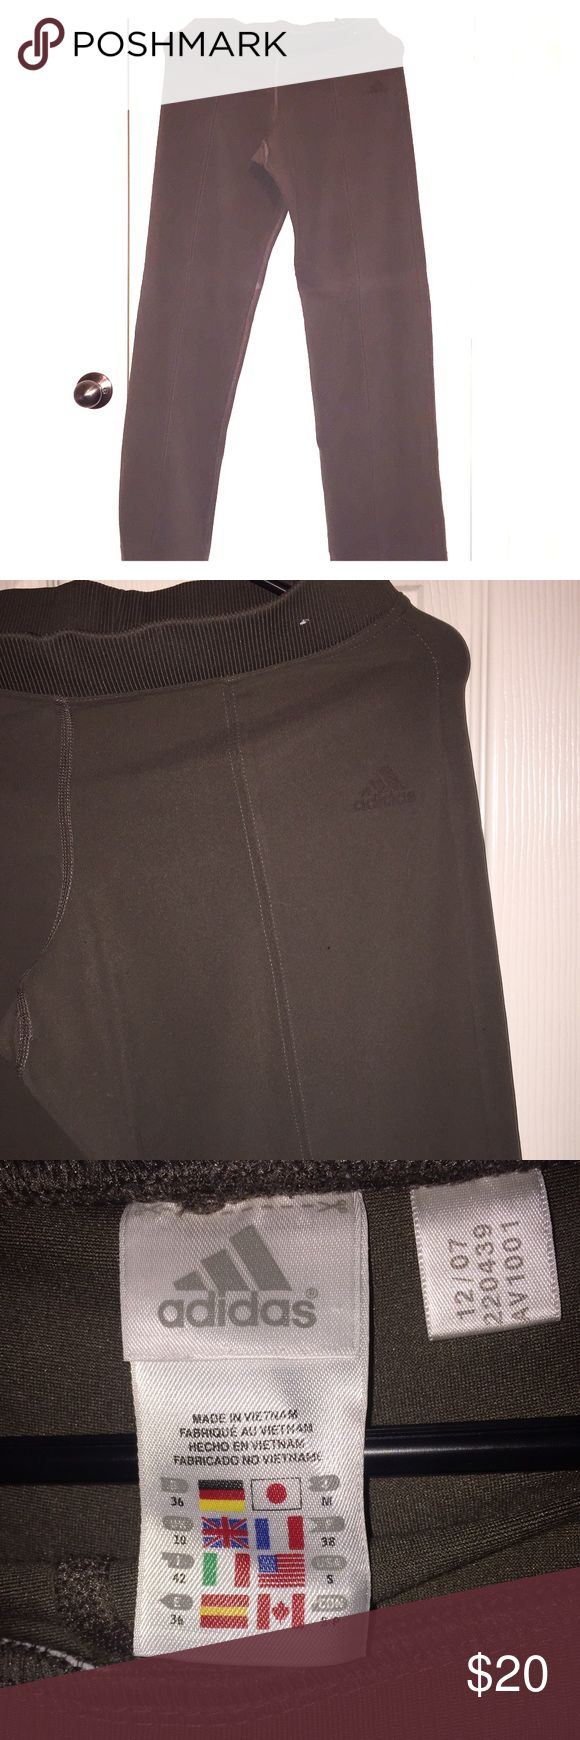 Adidas Pants Brown super comfy pants. Meant to be used for working out or lounging around. Like new. Adidas Pants Track Pants & Joggers